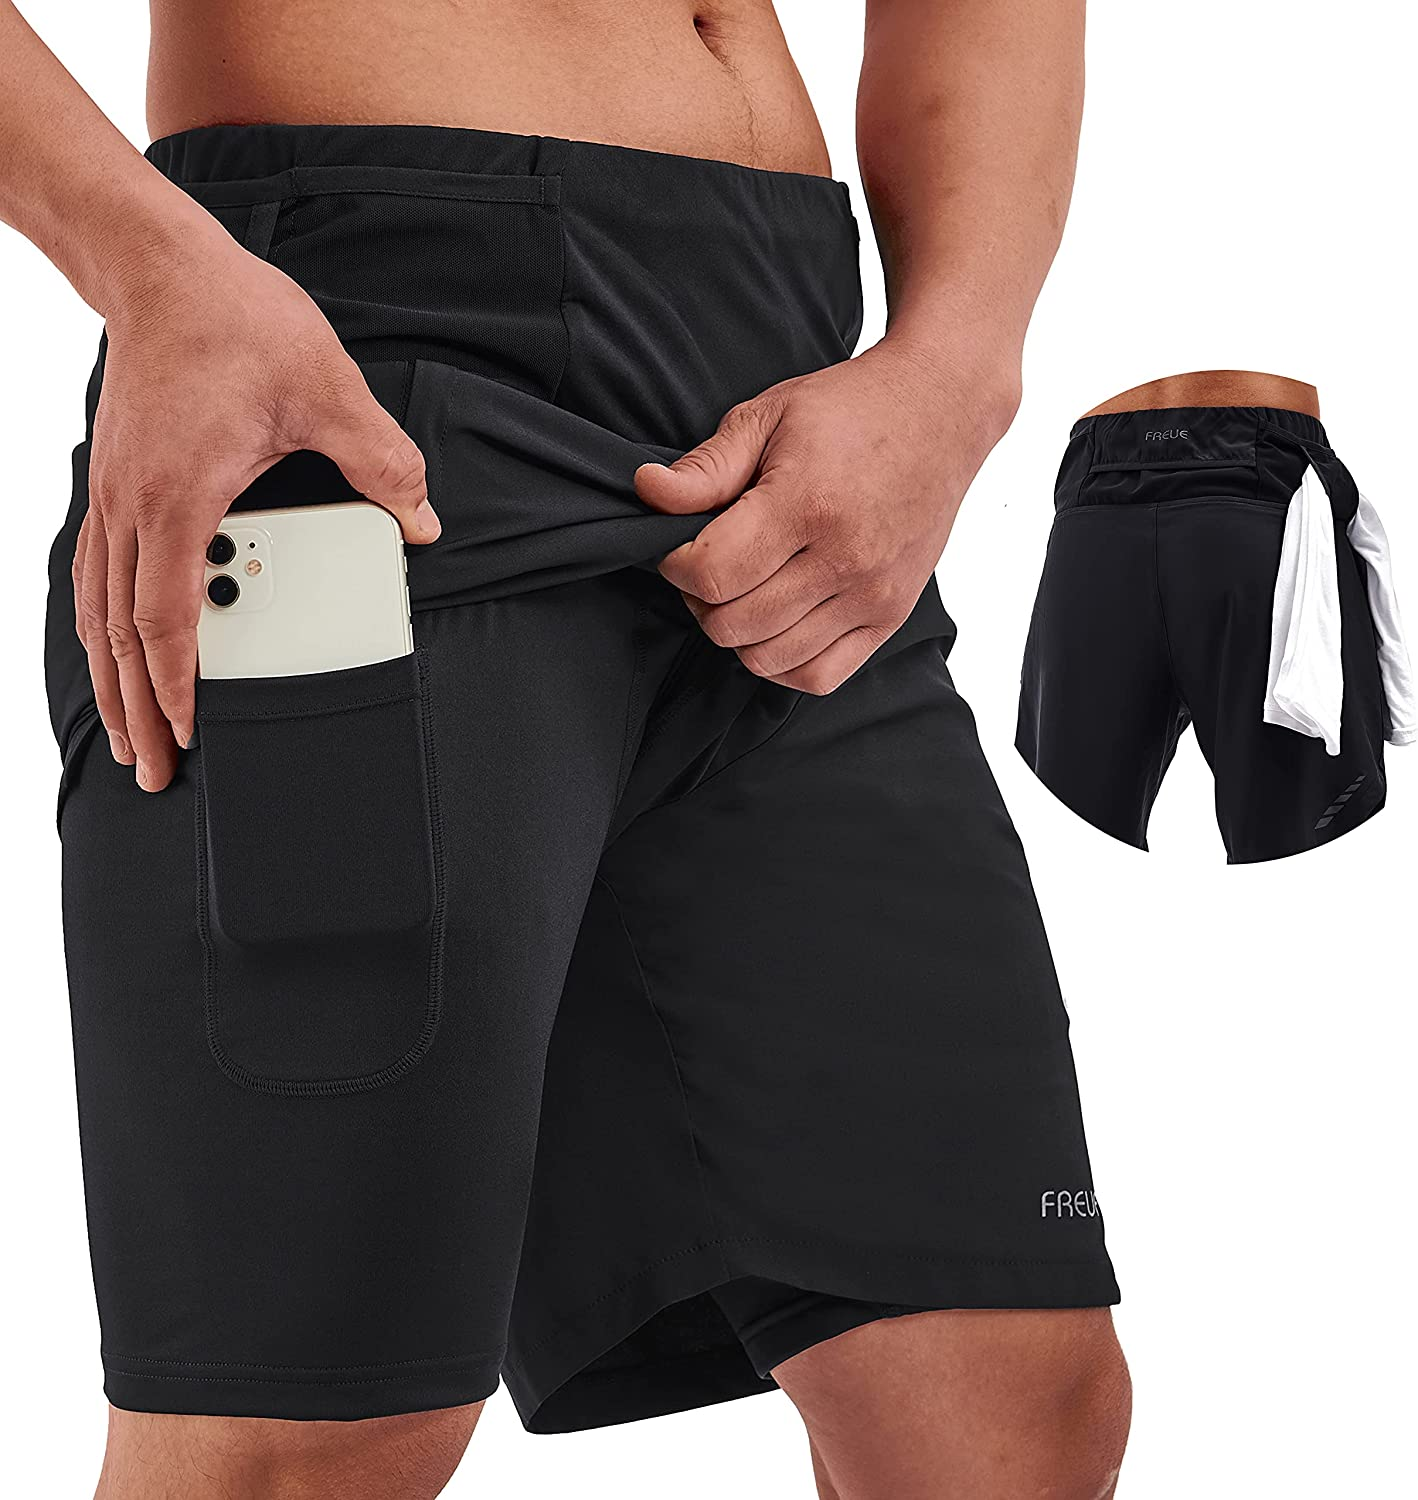 Limited price sale FREUE Men's Special Campaign 2 in 1 Running Shorts 8